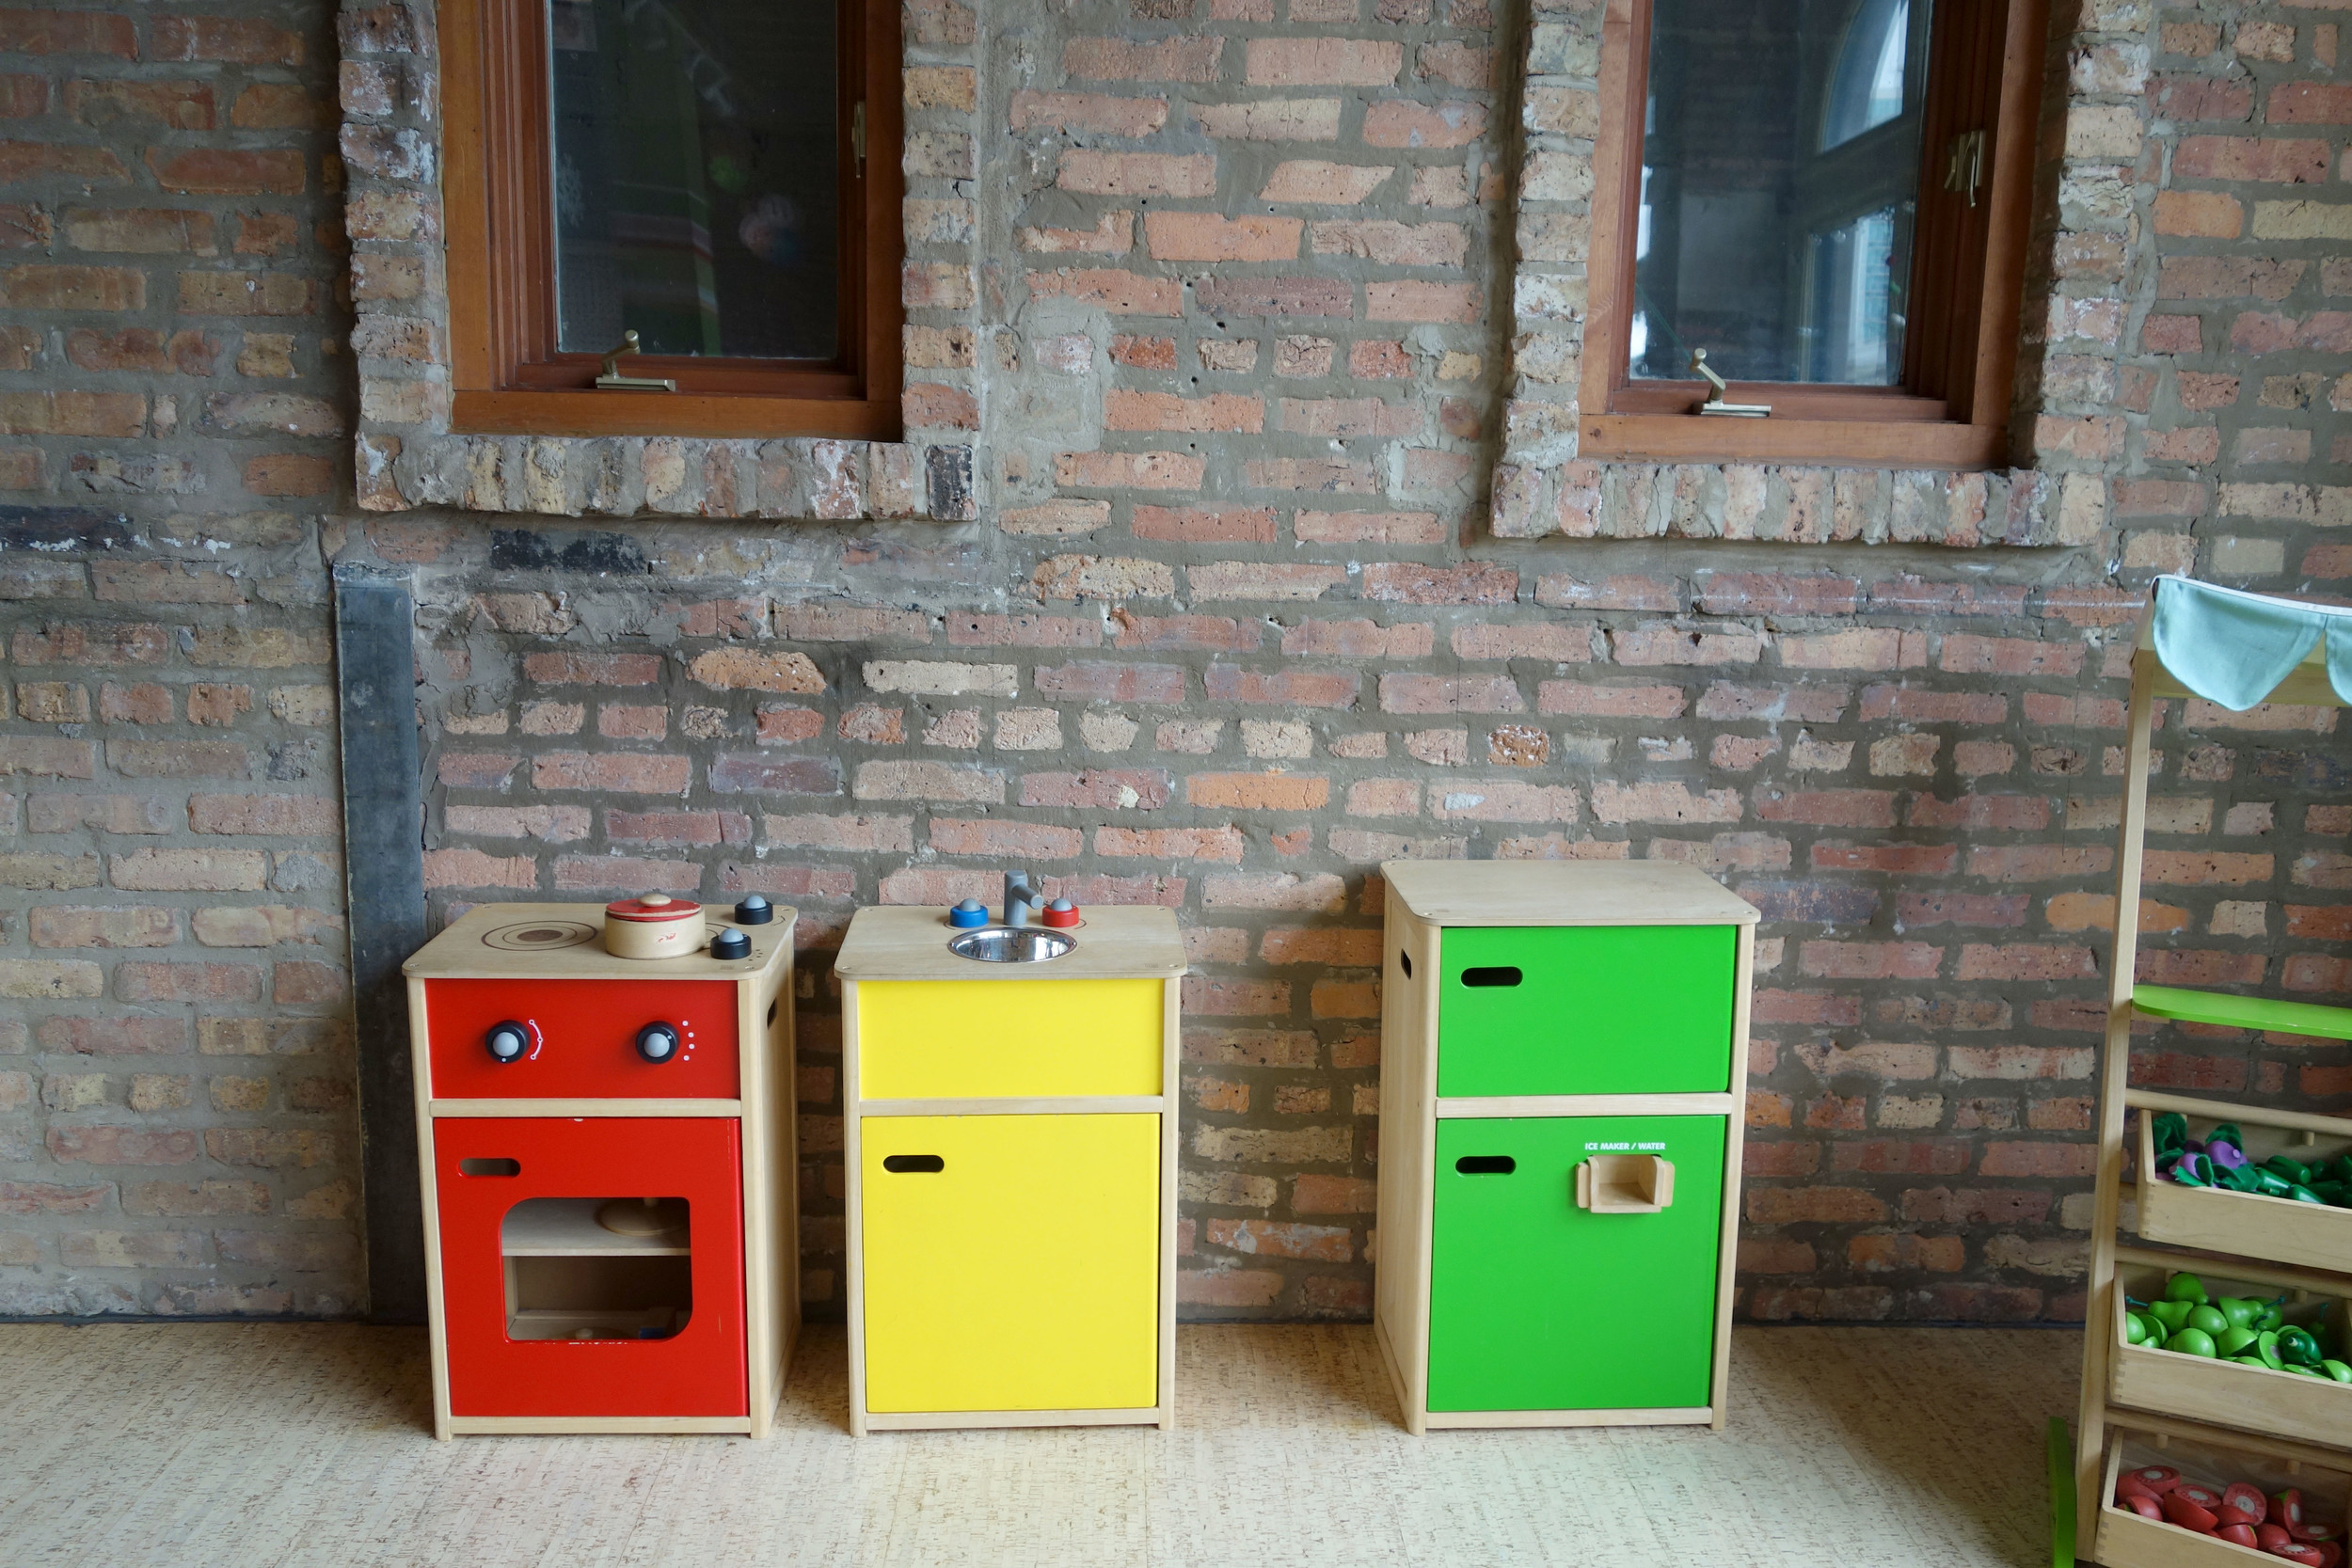 Mini kitchen set for the kids to play with!